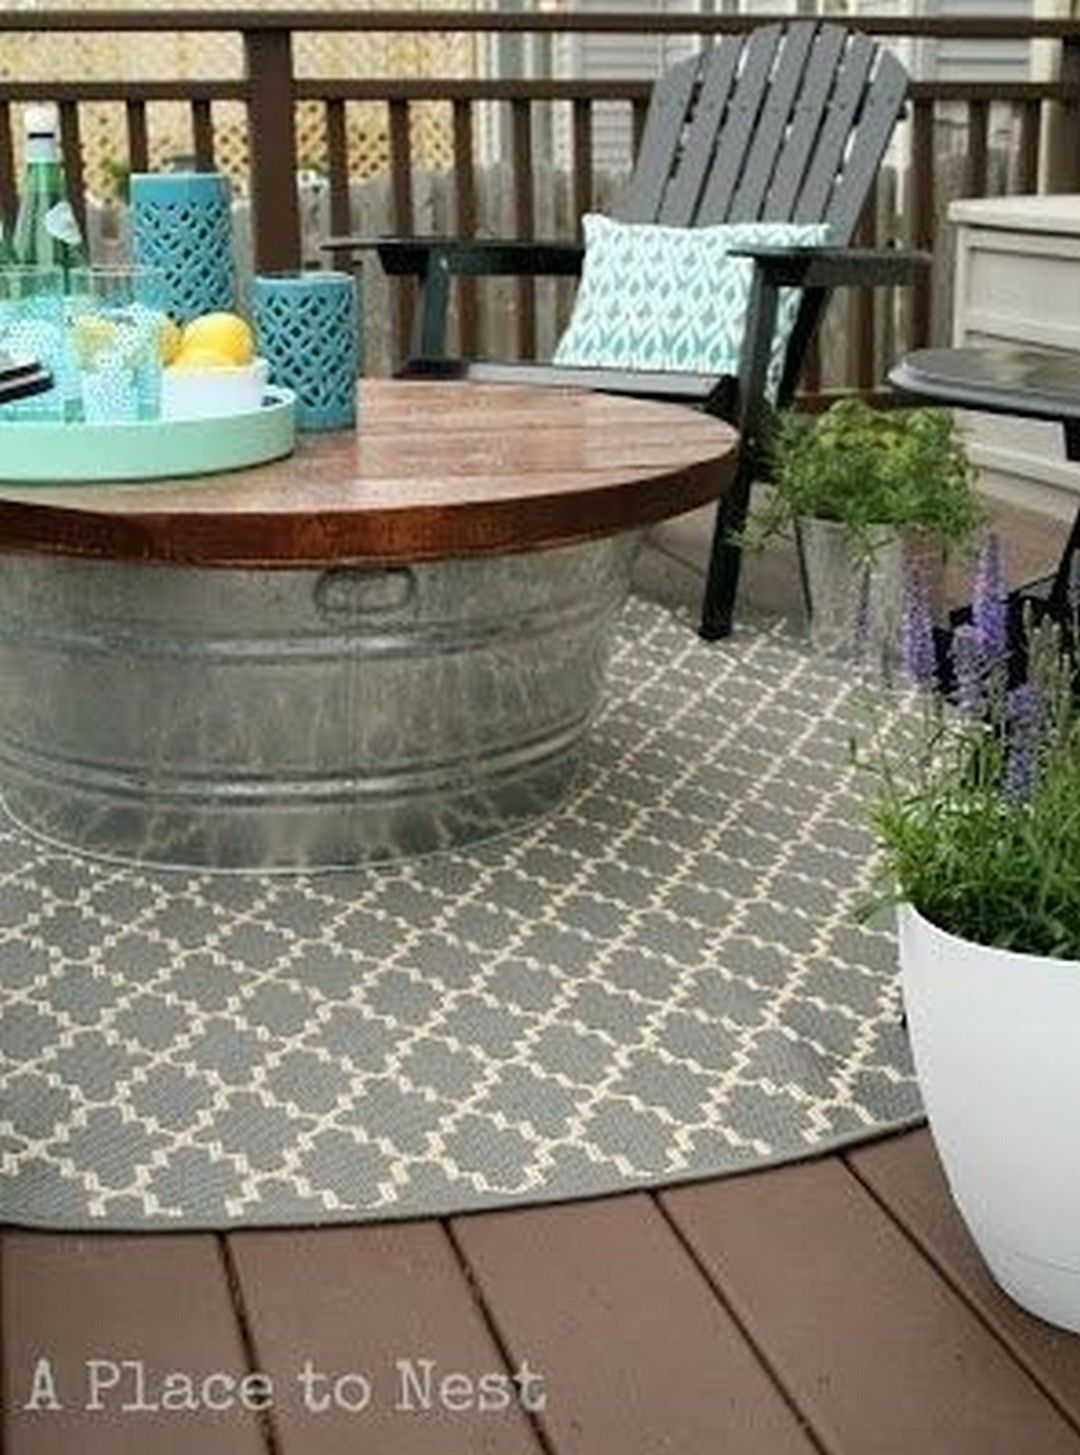 99 deck decorating ideas pergola lights and cement planters - Deck Decorating Ideas